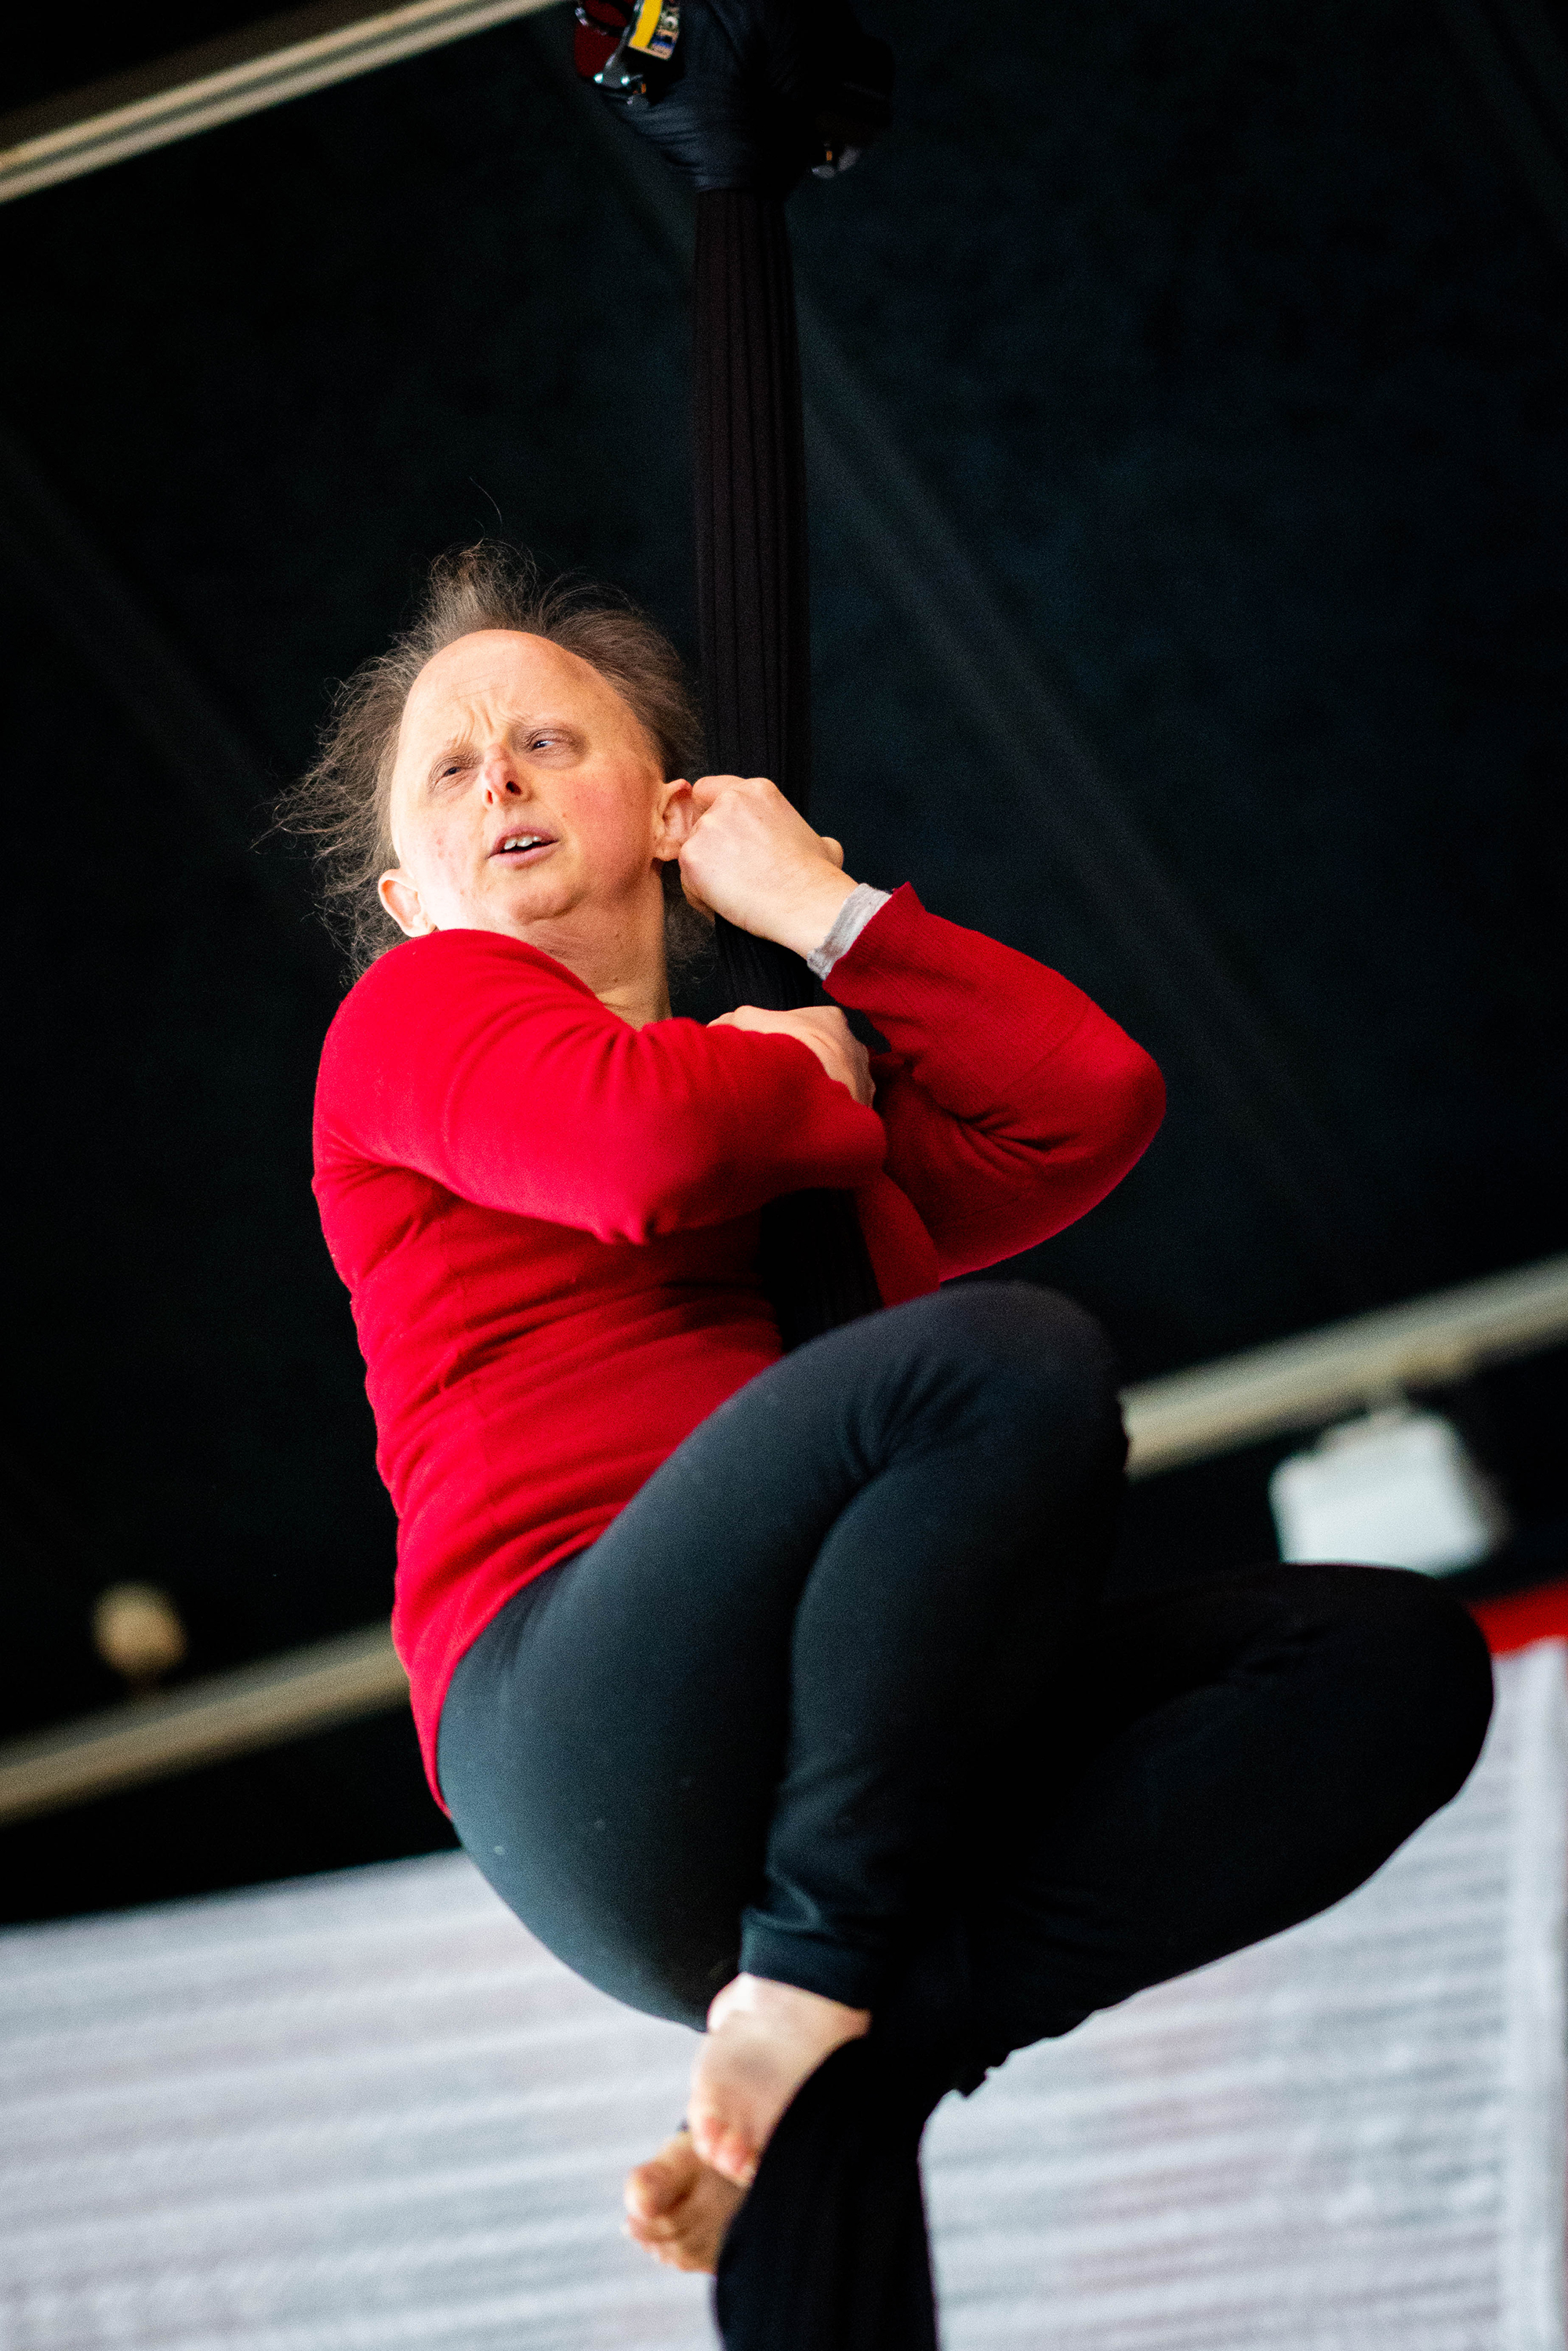 A medium shot of a white woman with thin fair hair clinging to an aerial silks with her hands and feet.